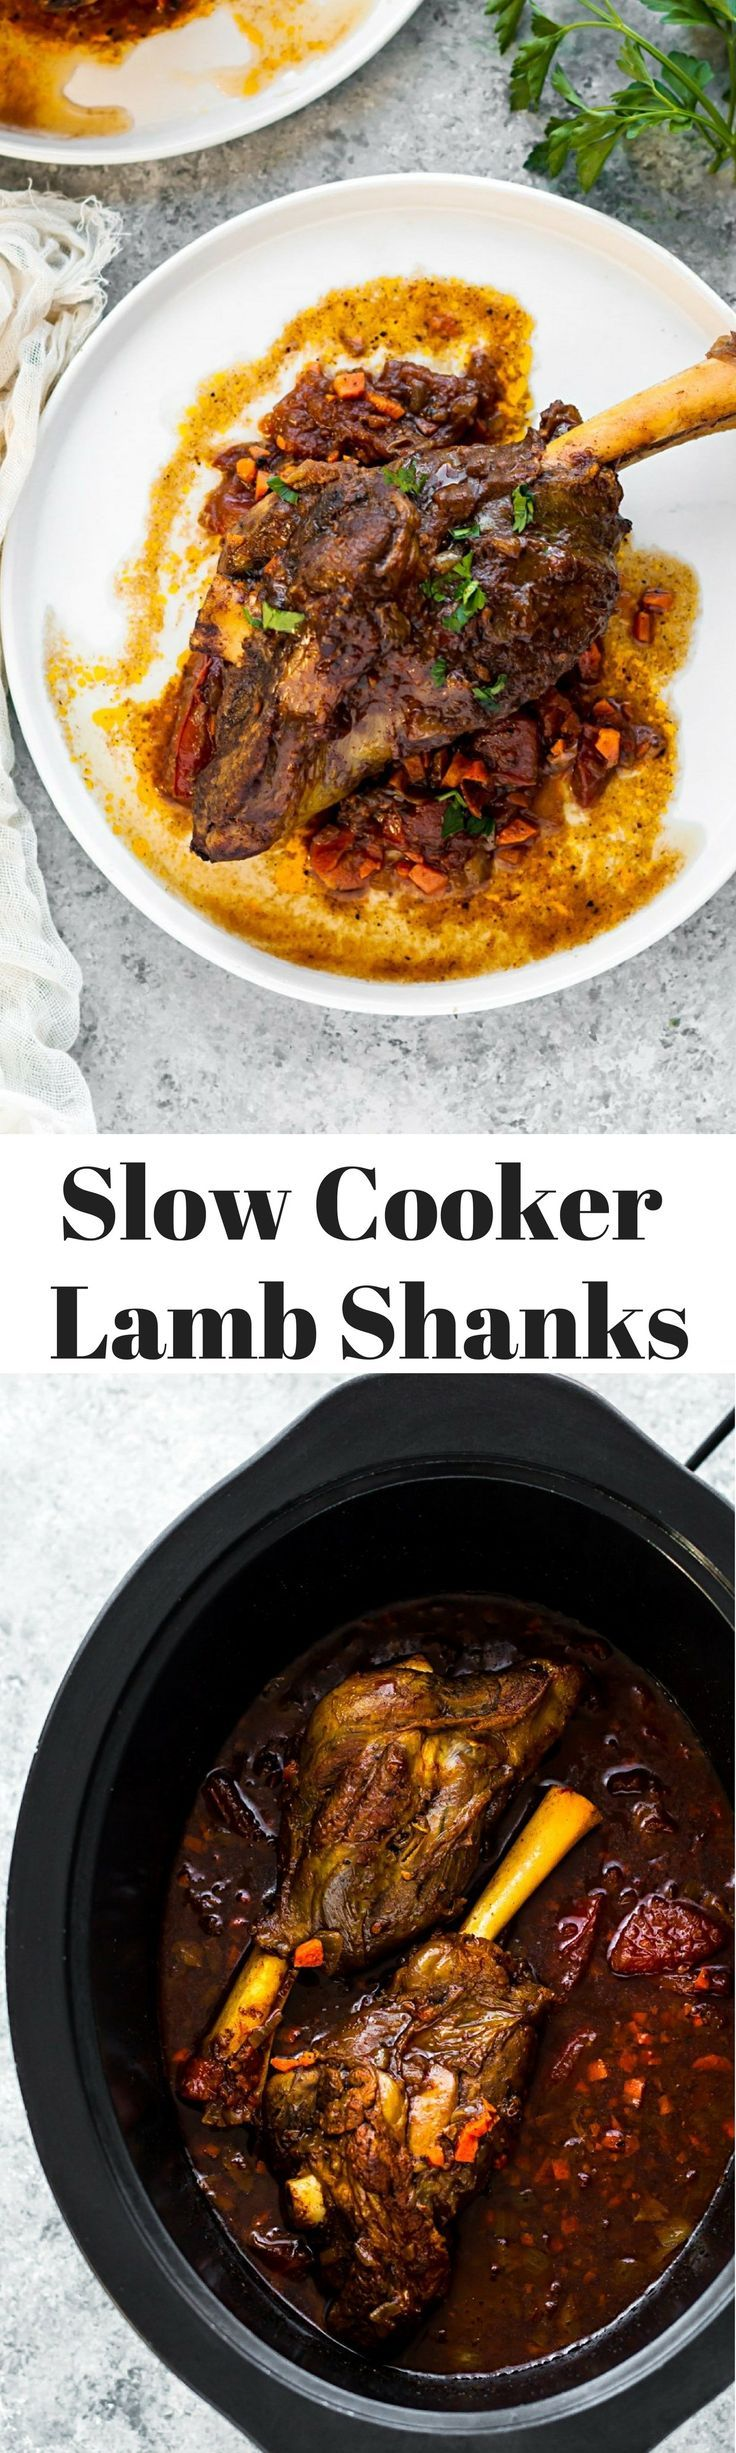 slow cooker lamb shanks - easy slow cooker recipe #crockpotrecipes #ad